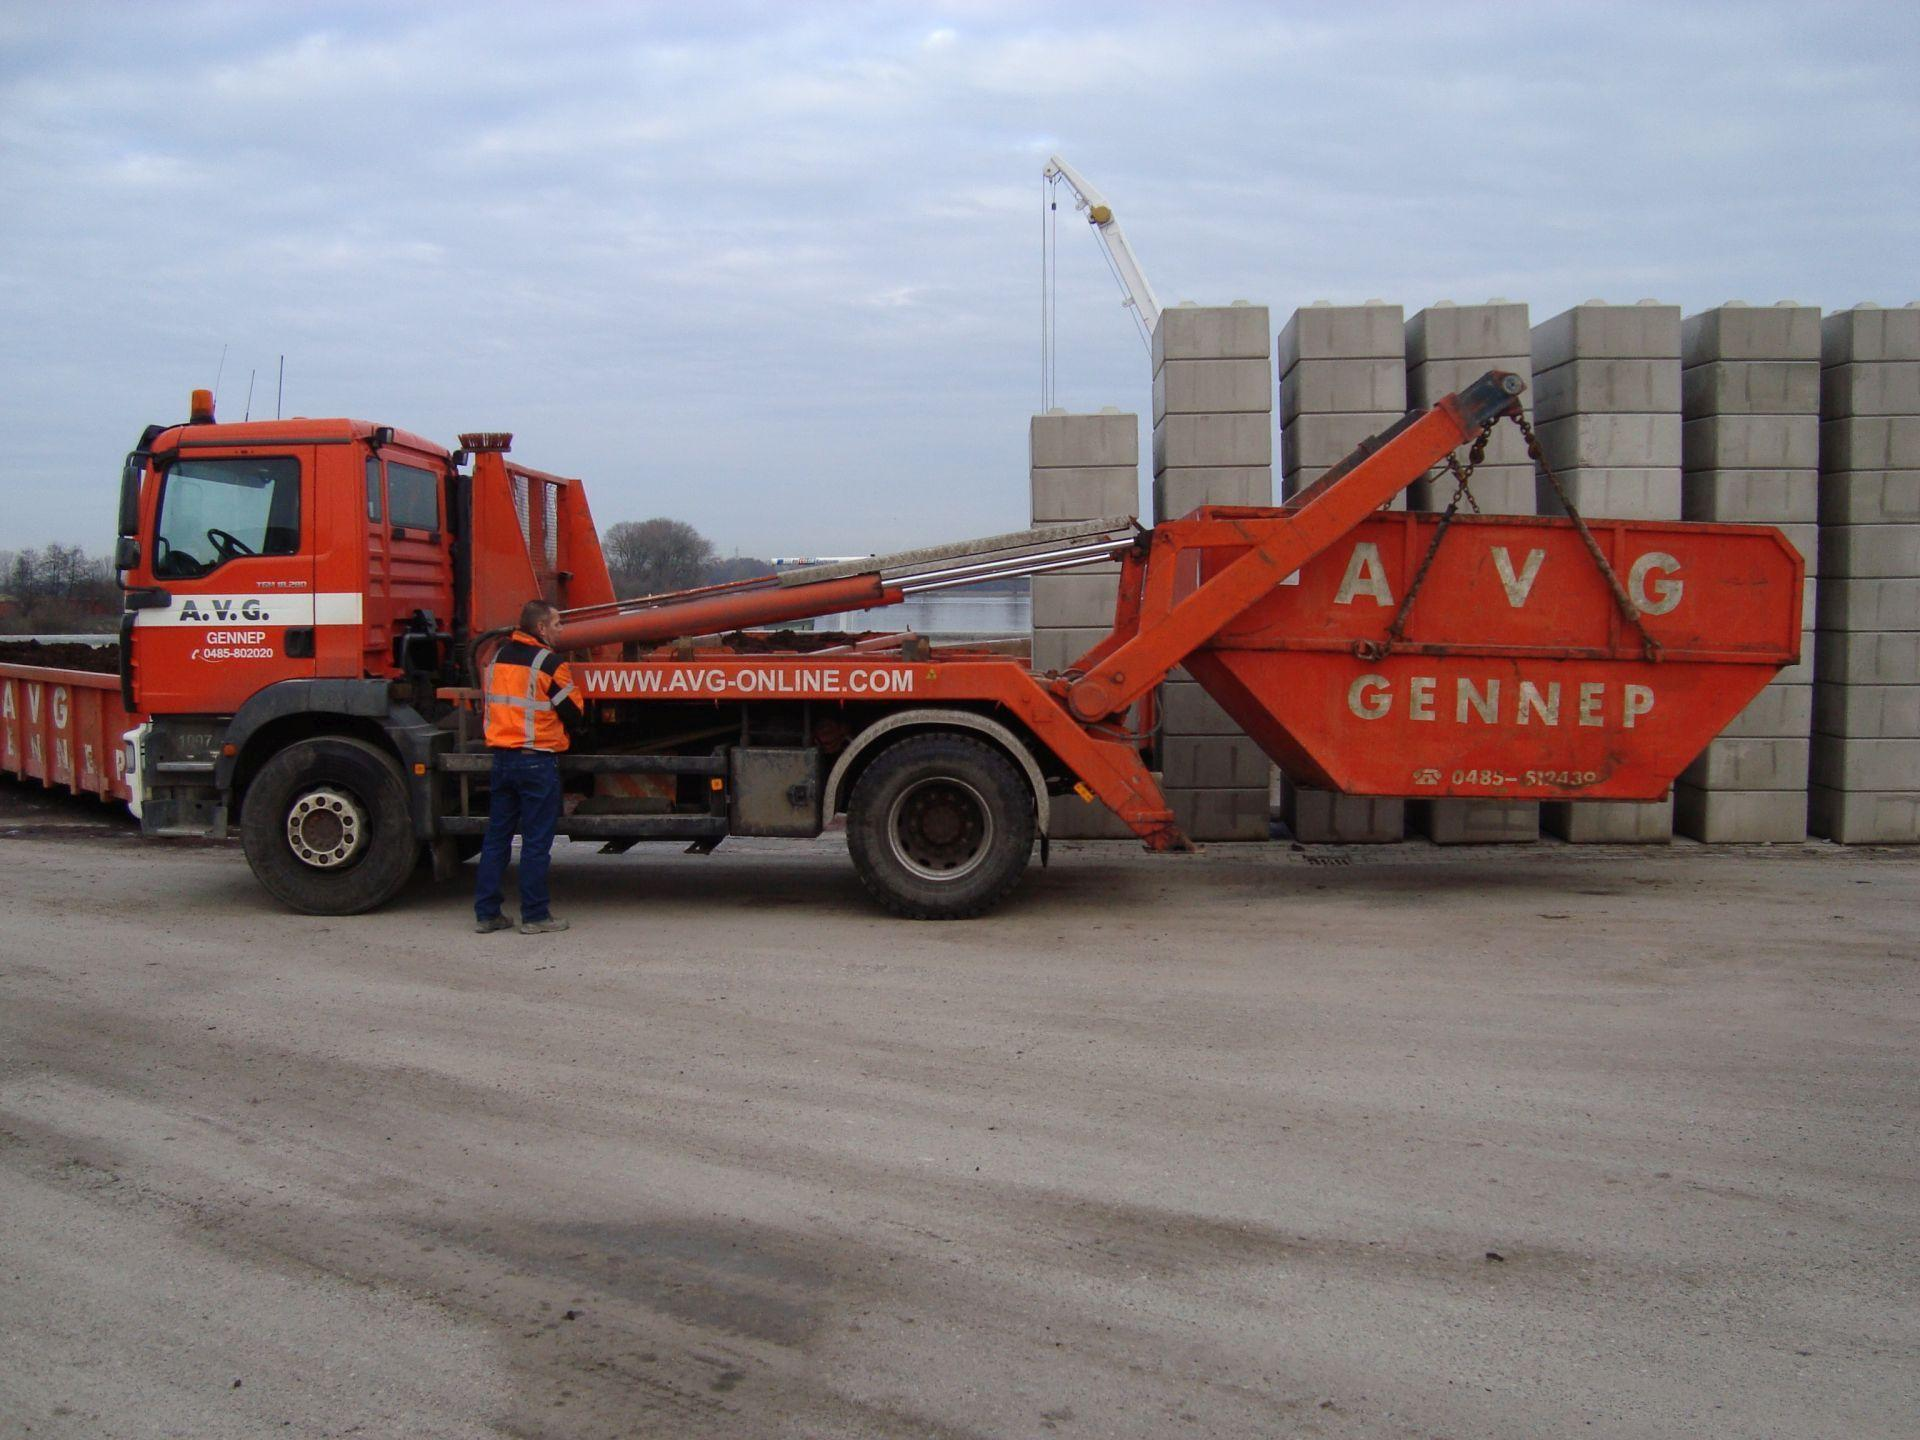 hoge-container-15-avg-bouwstoffen